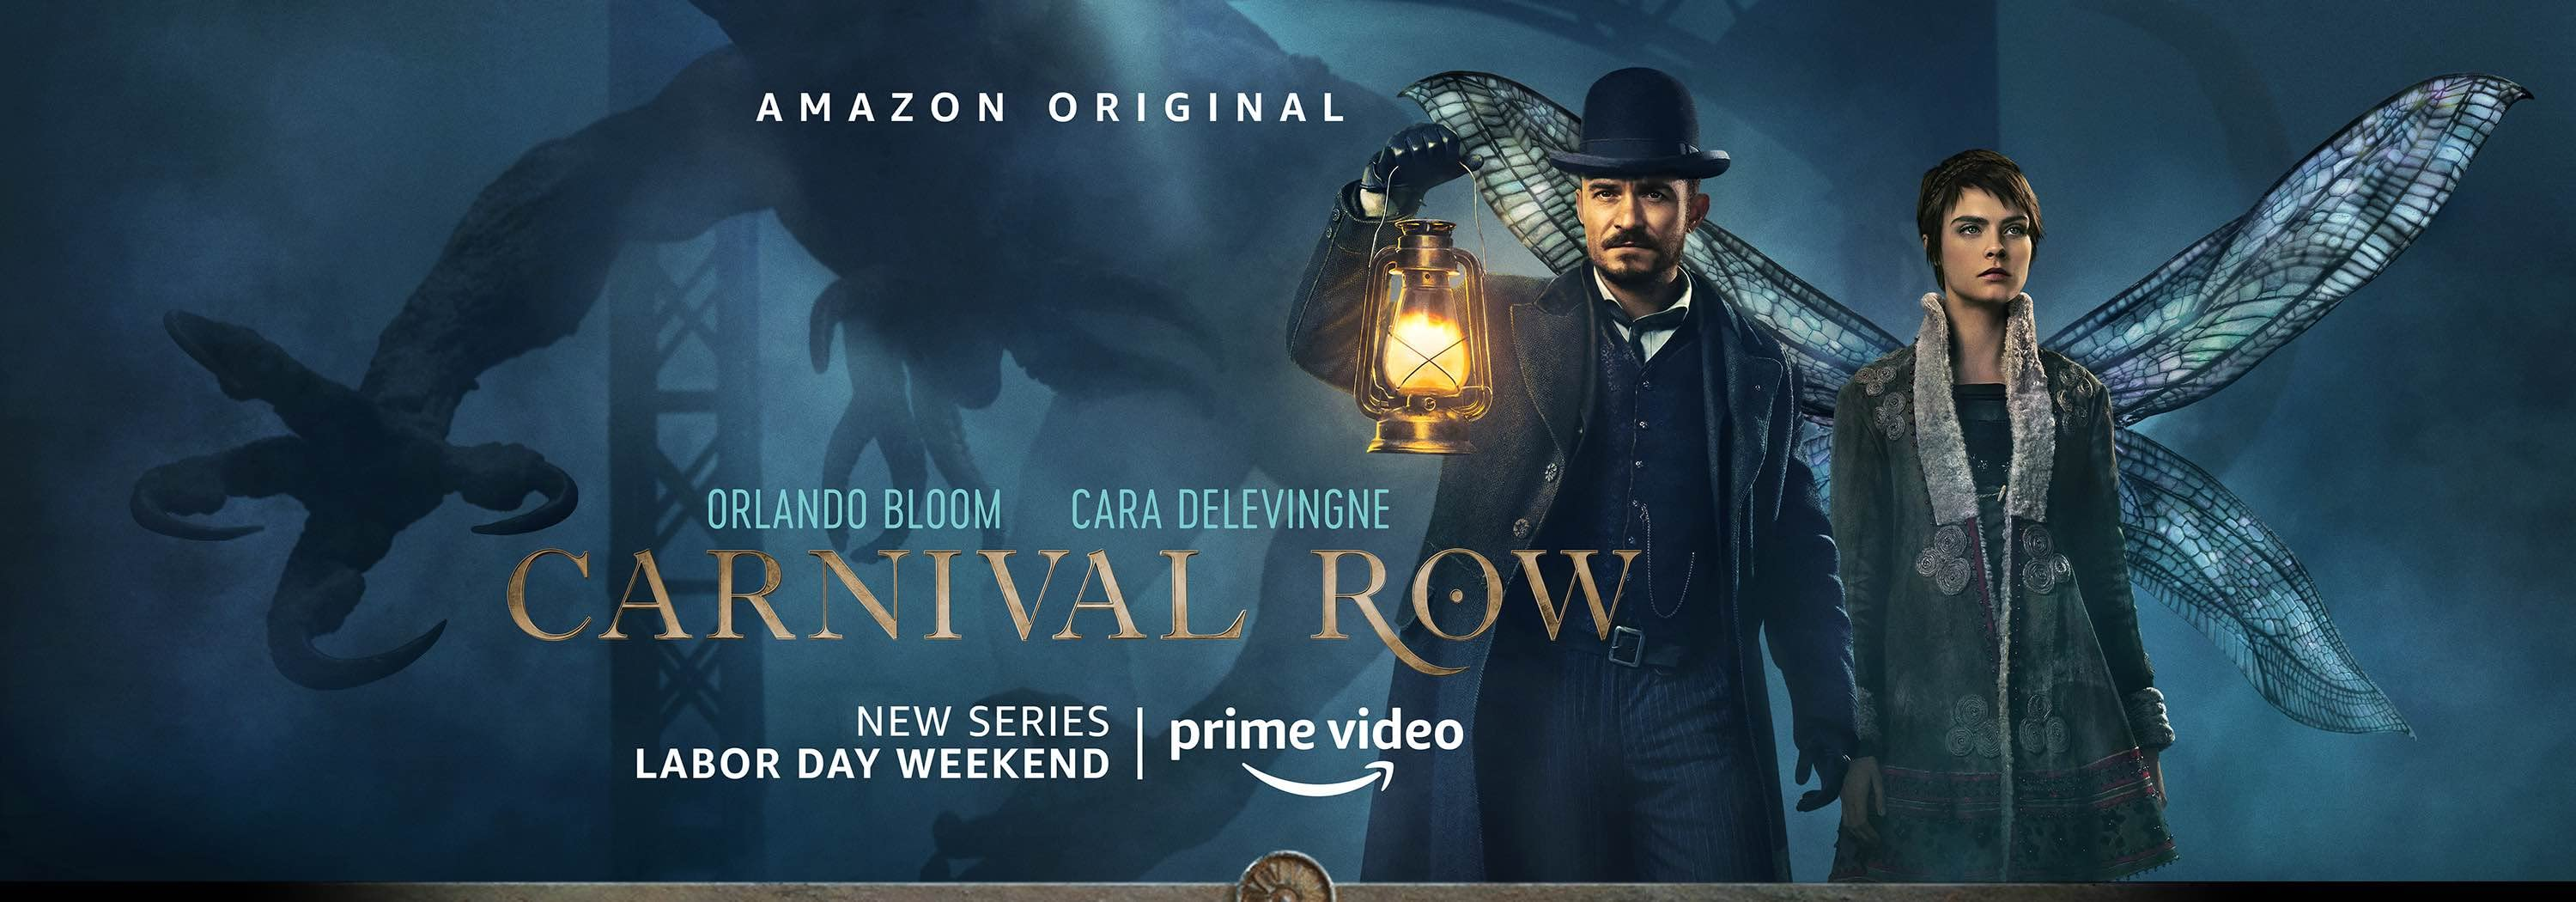 Carnival Row on Amazon Prime